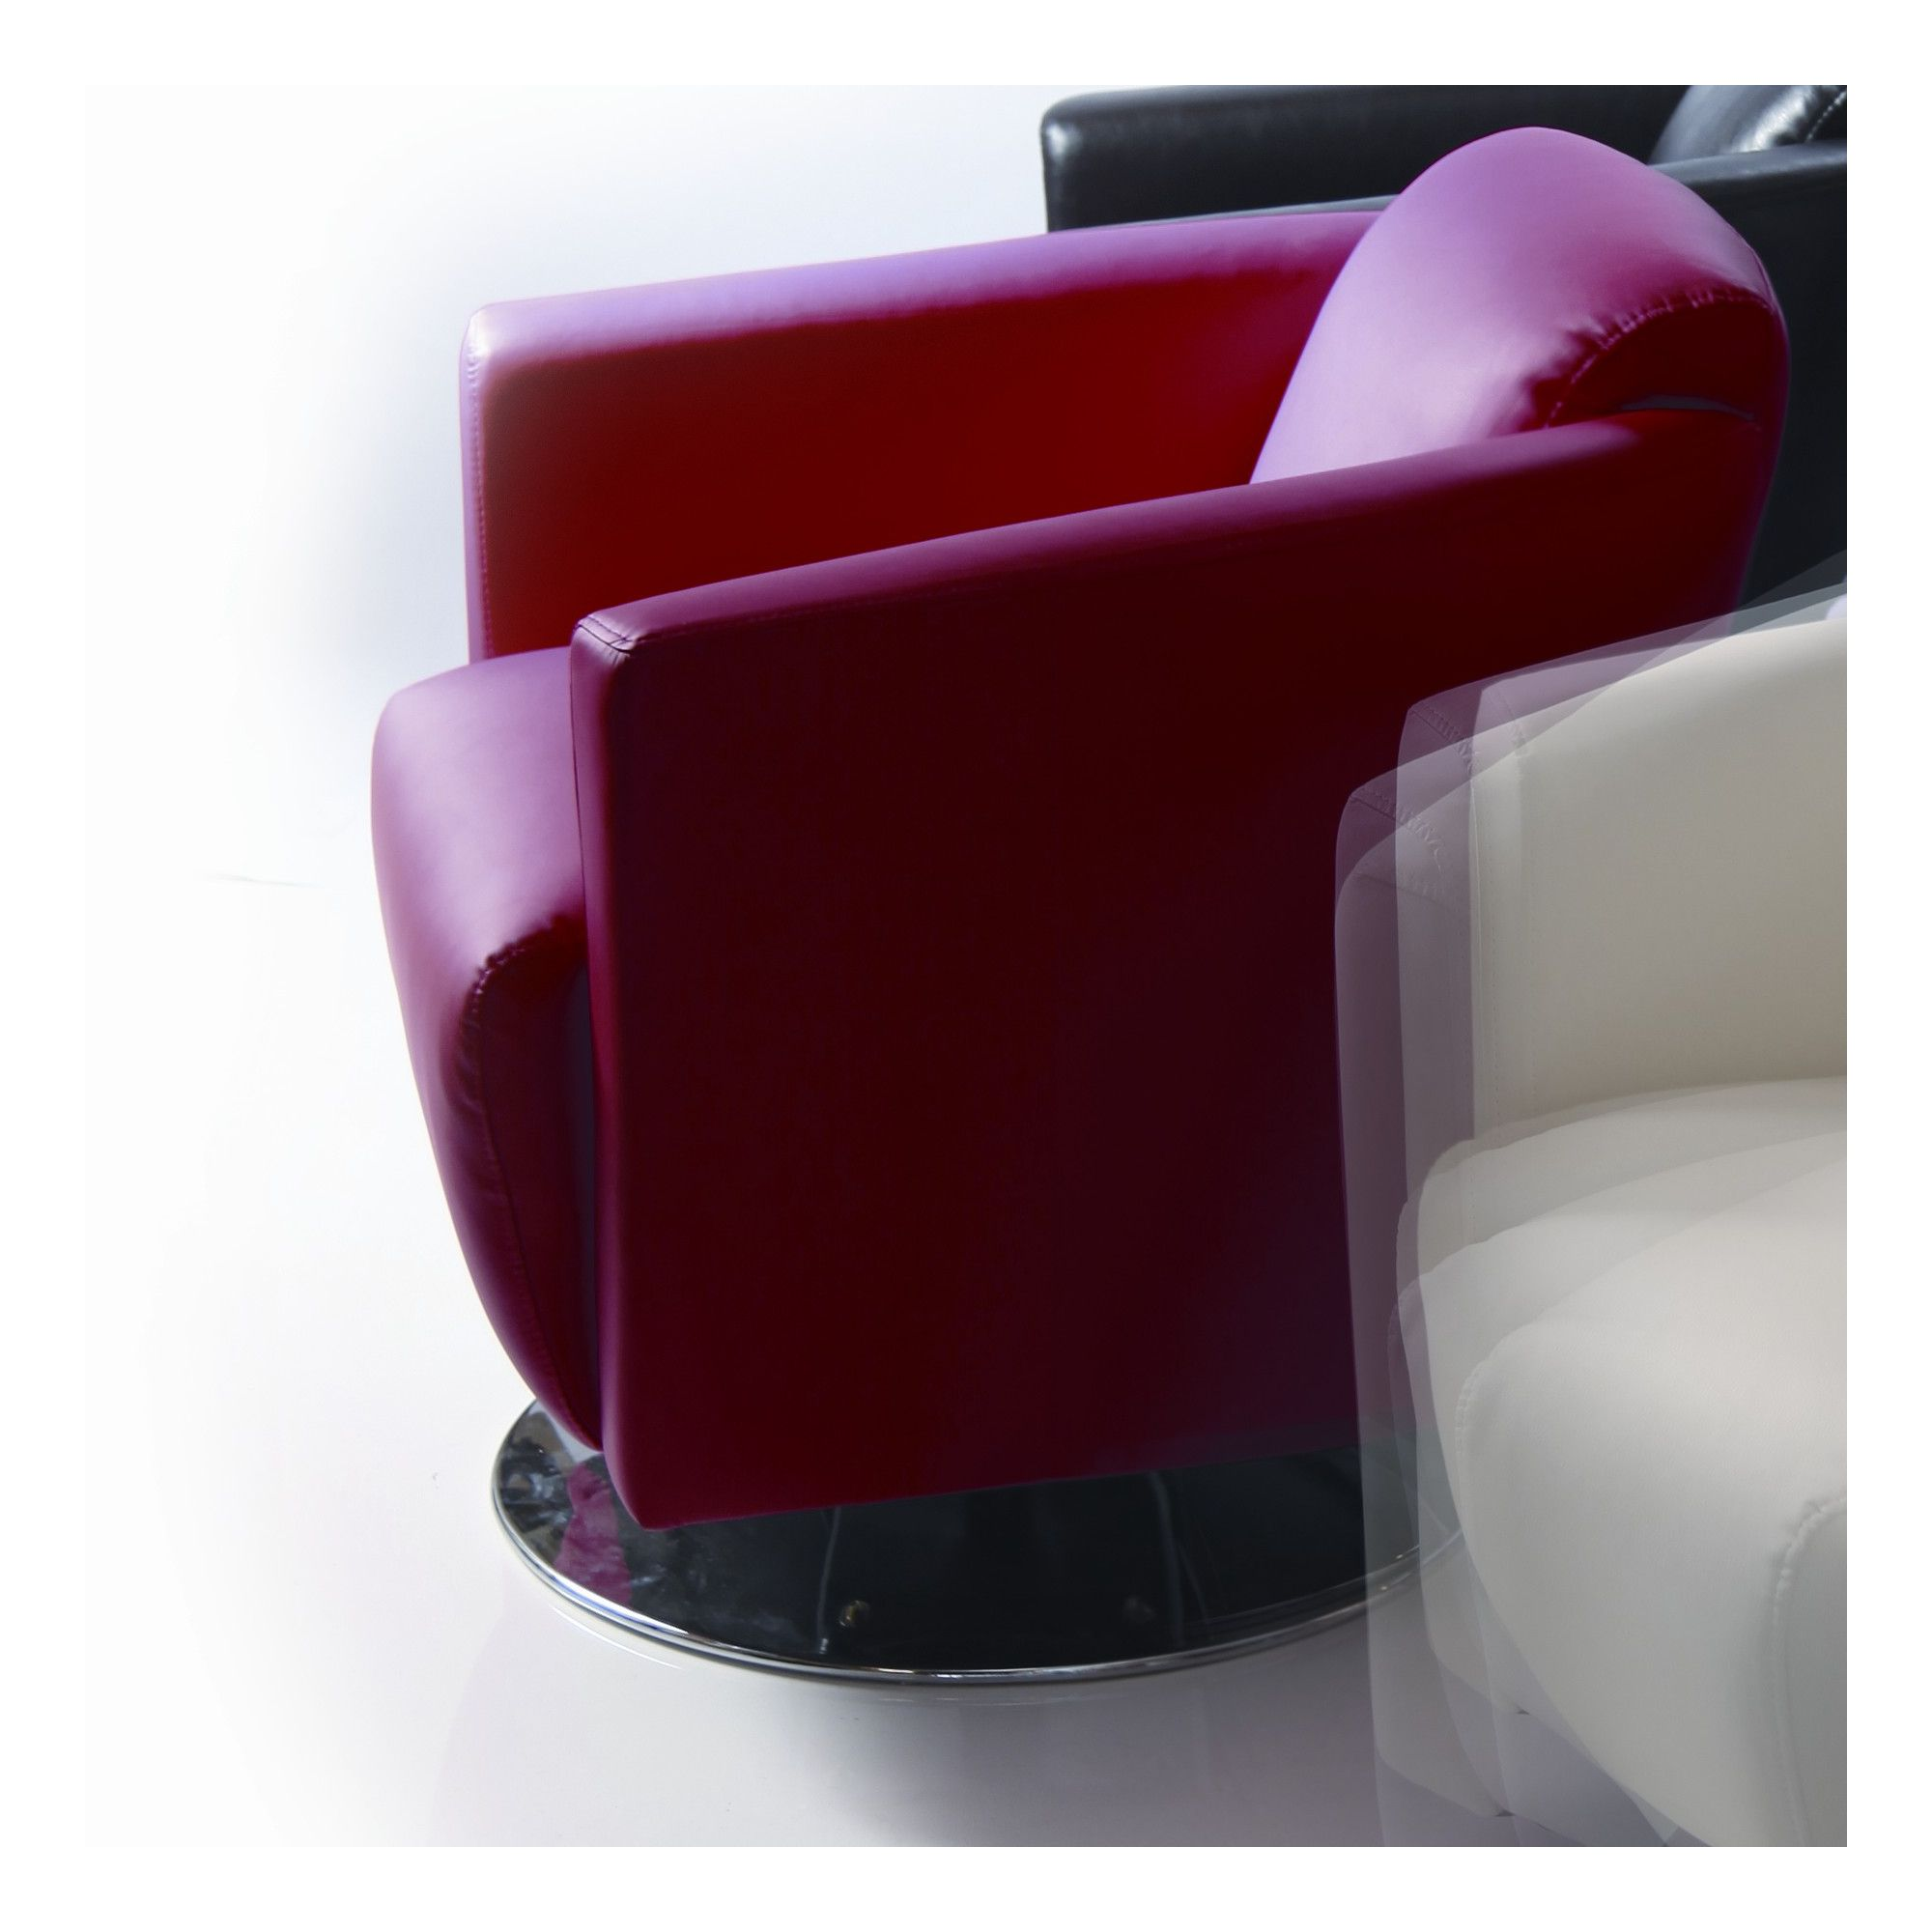 Wilkinson Furniture Pluto Swivel Tub chair - Red at Tesco Direct